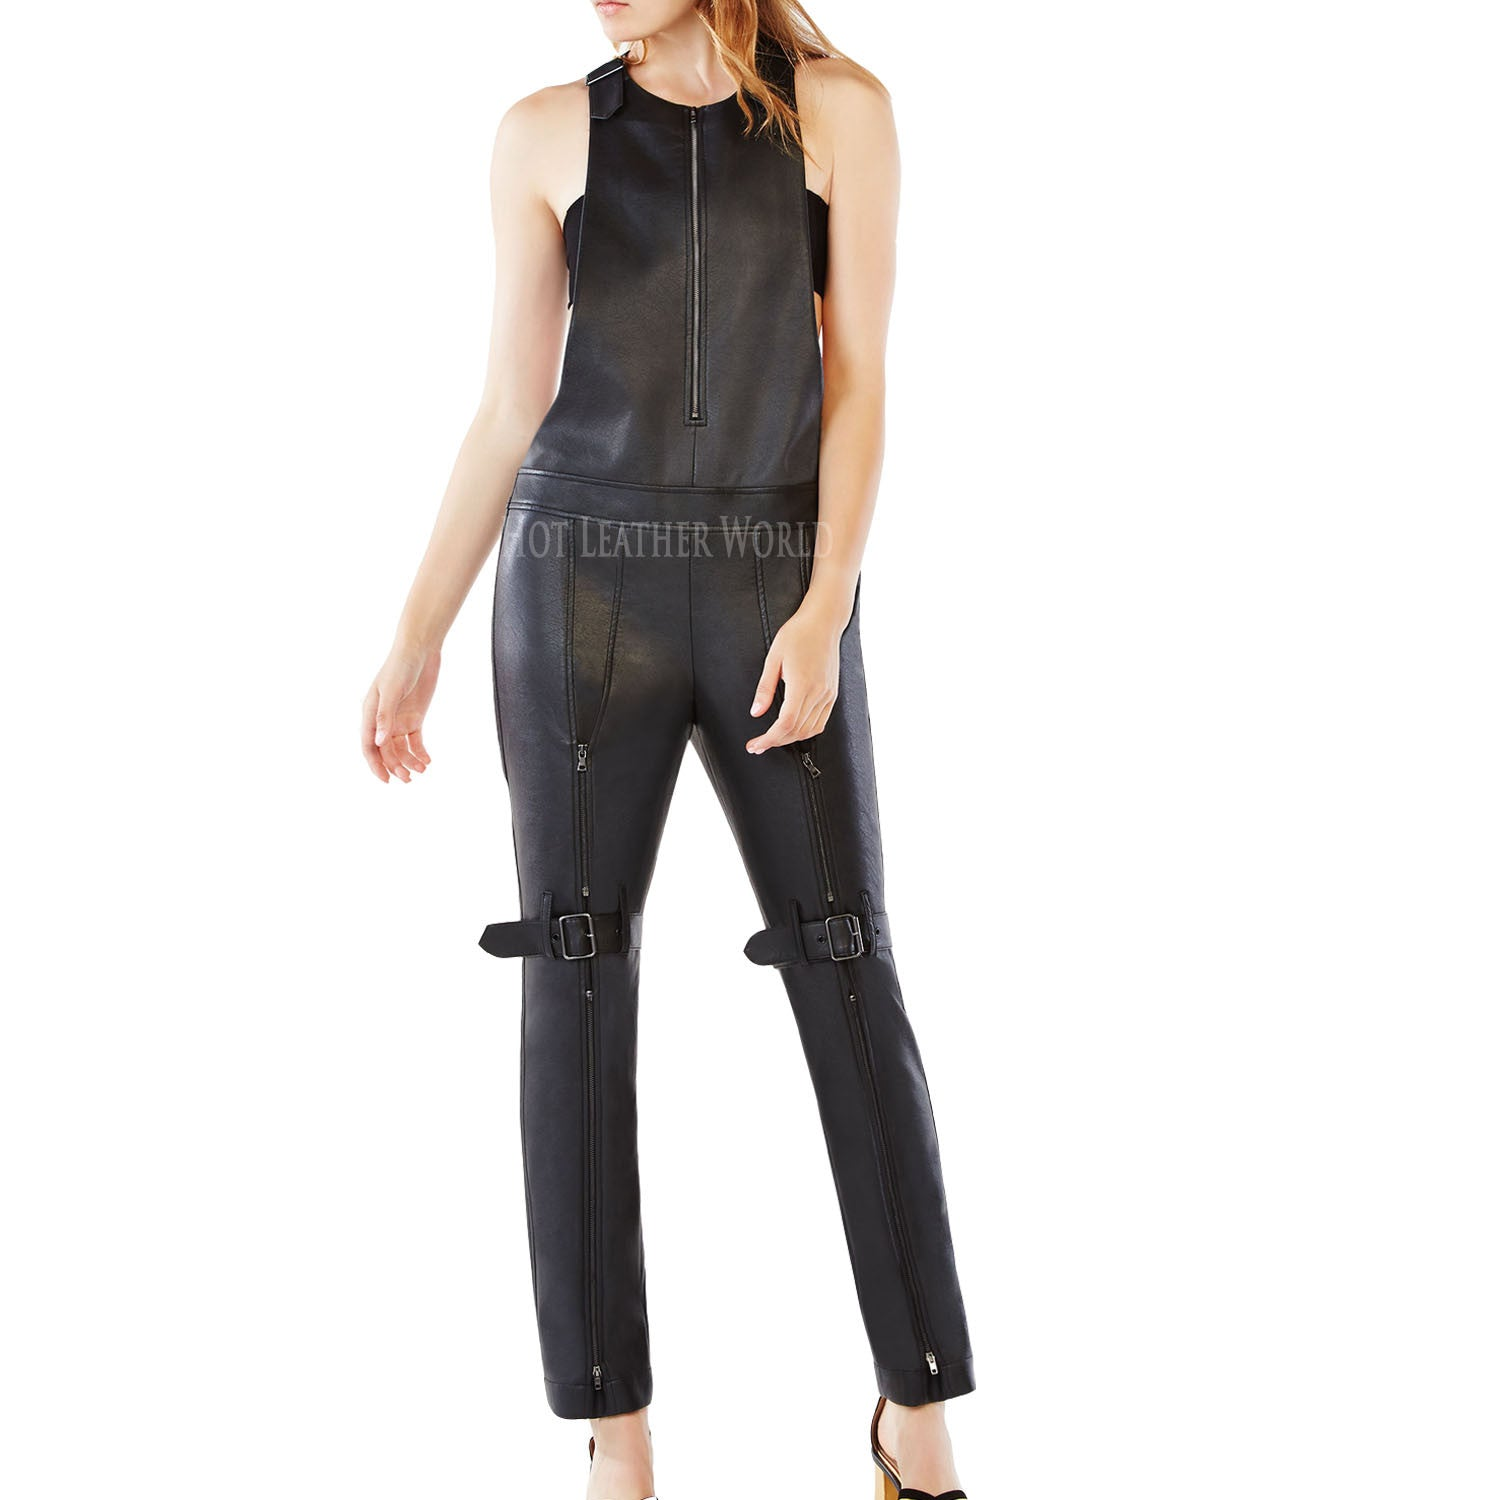 Leather Jumpsuit For Women -  HOTLEATHERWORLD